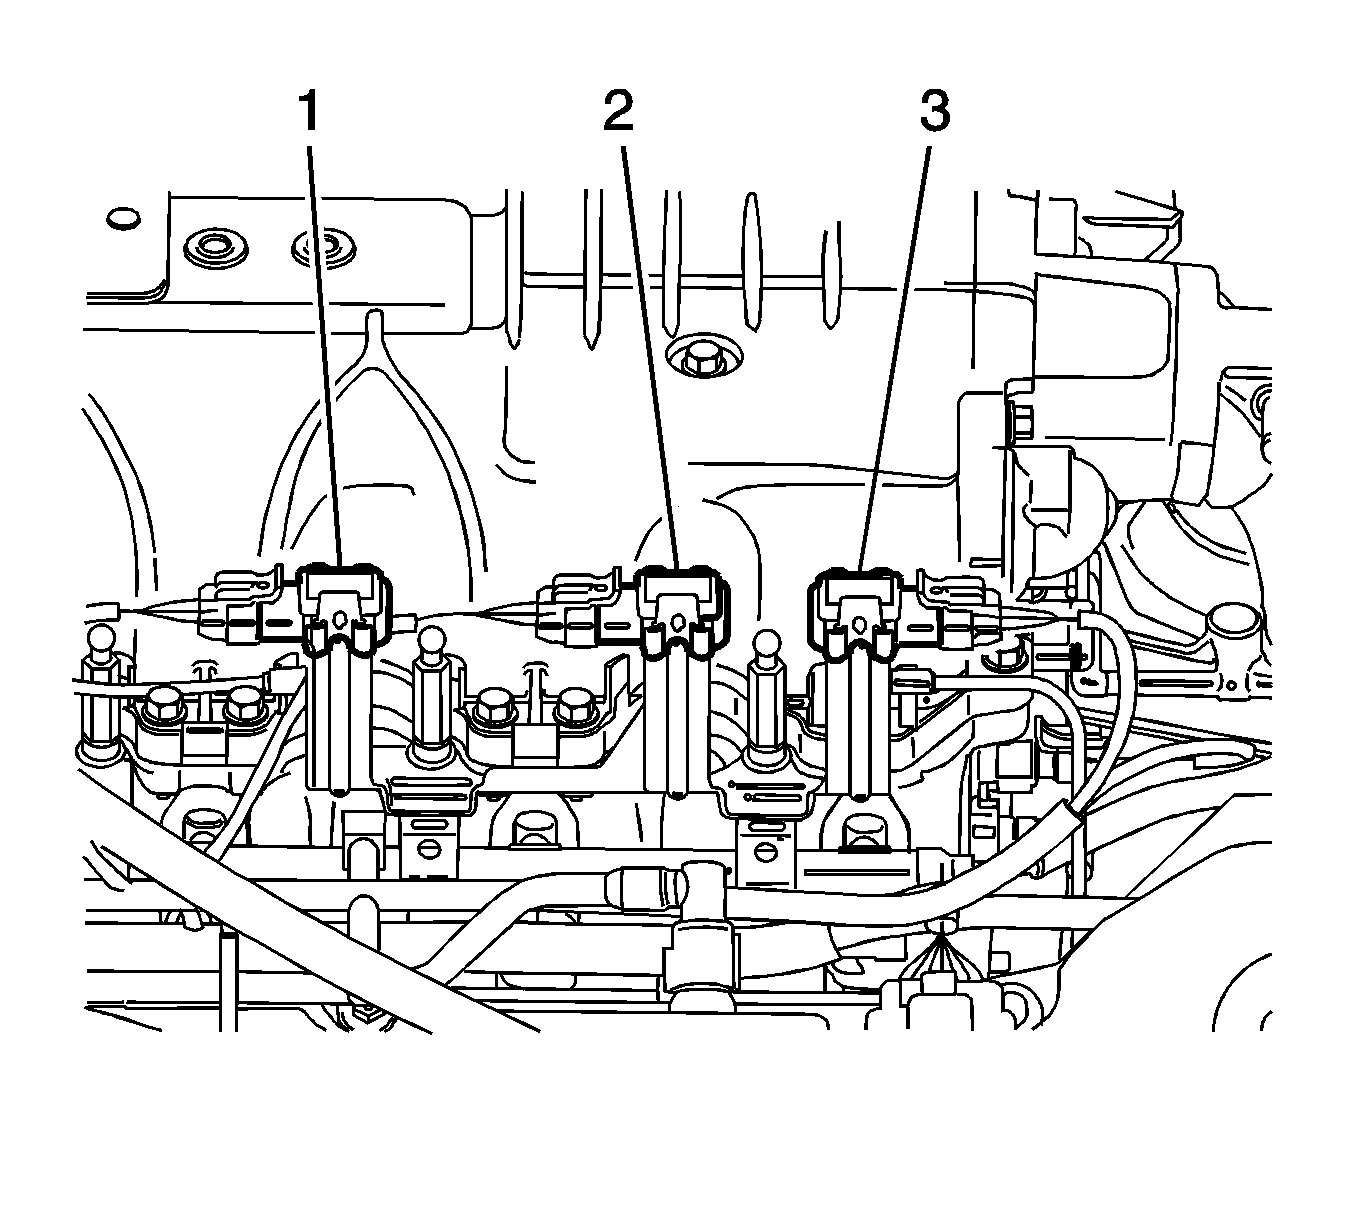 Rs Cadillac Cts Engine Diagram Schematic Wiring